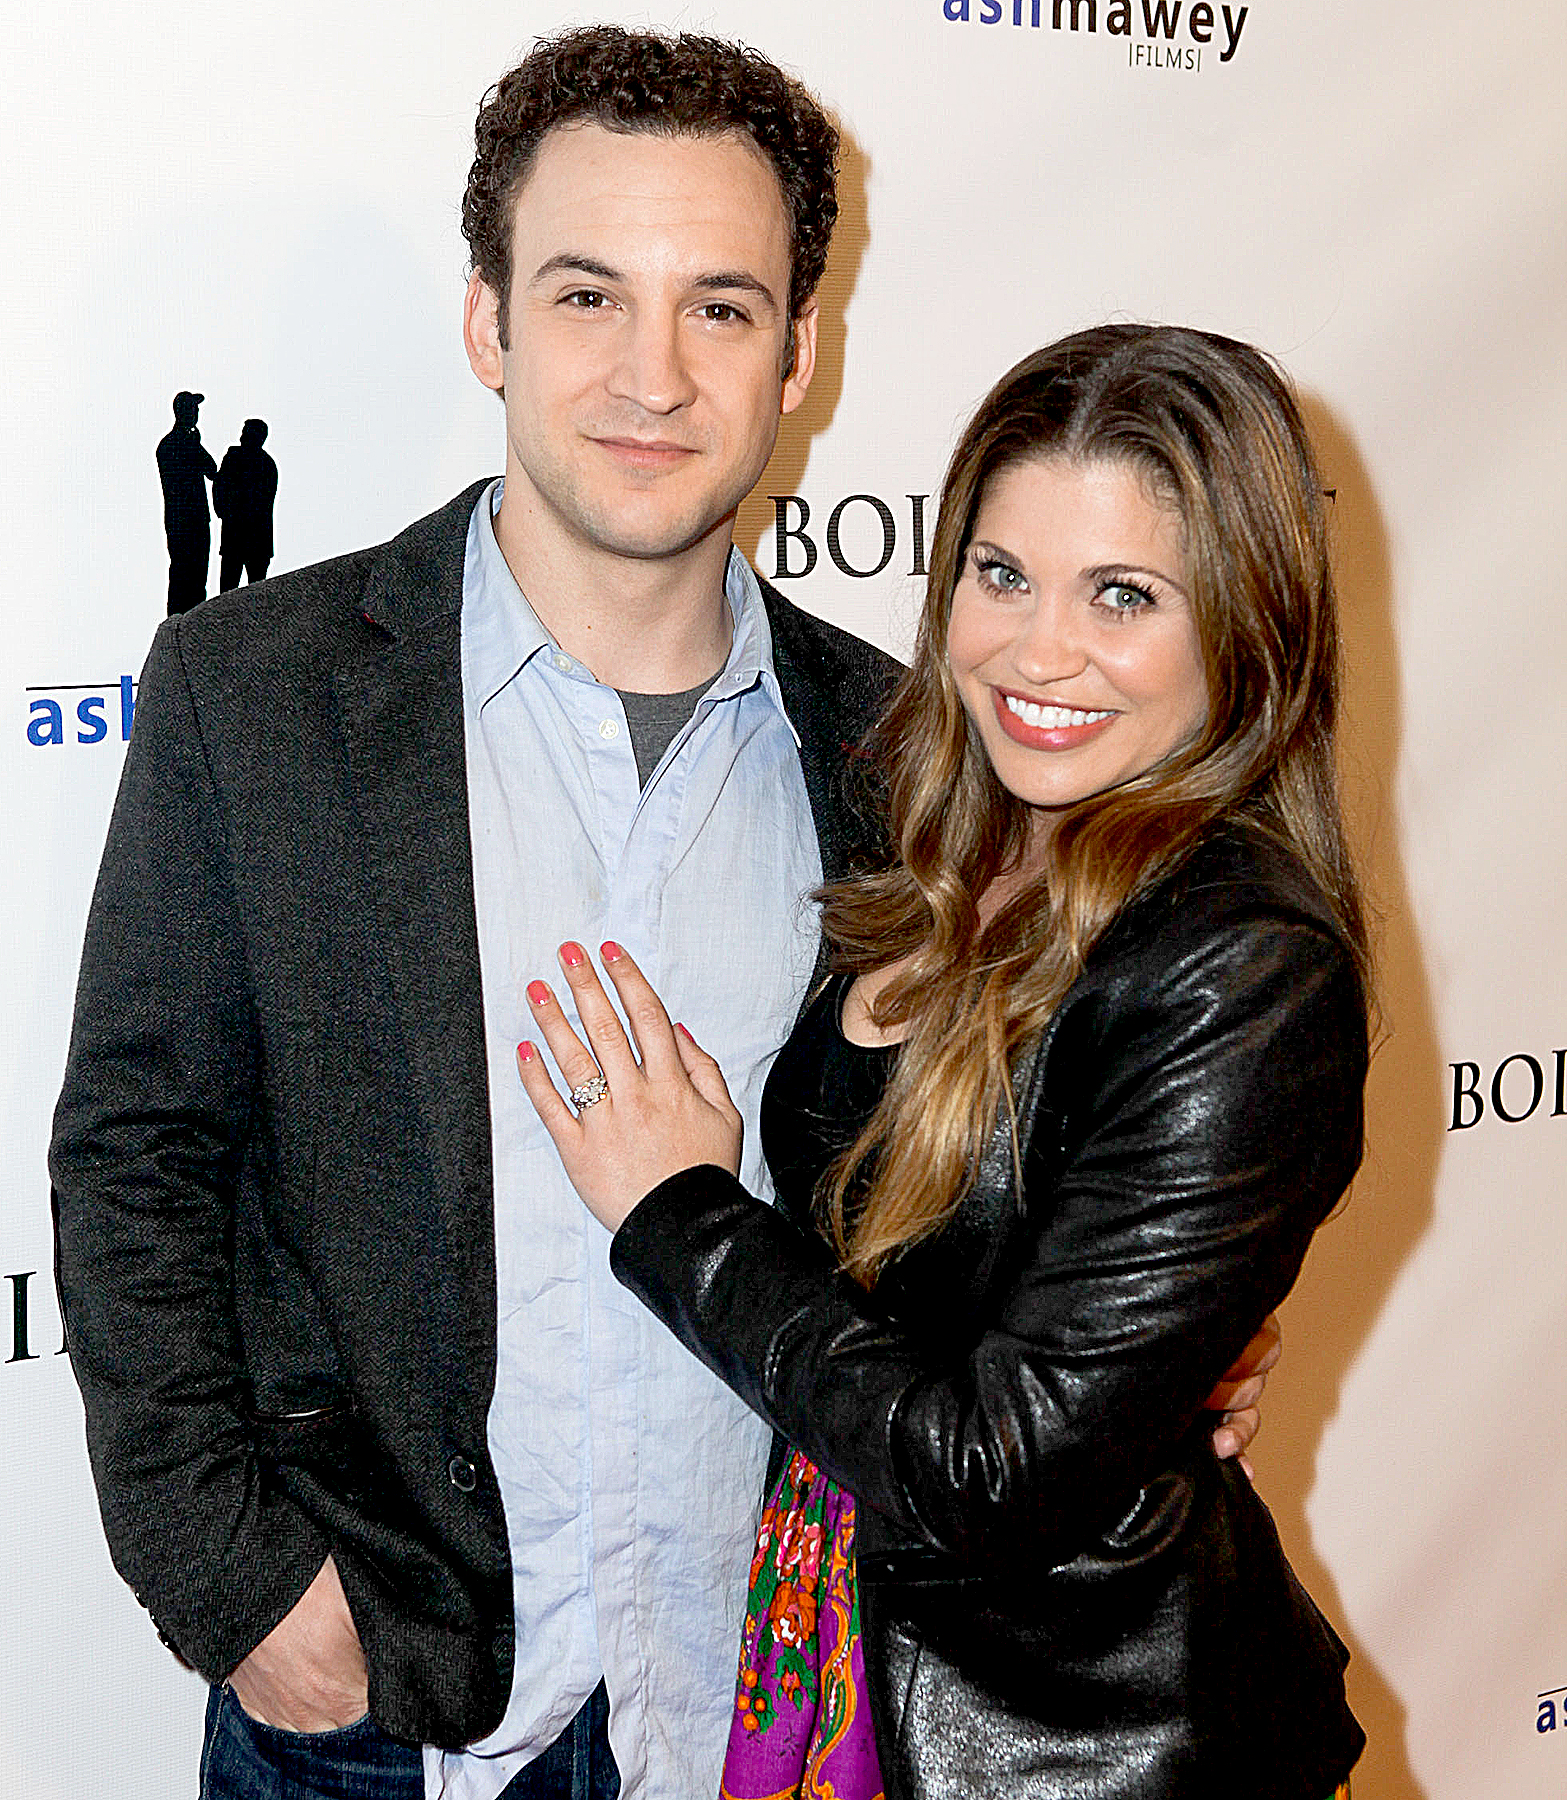 Cory and topanga dating in real life